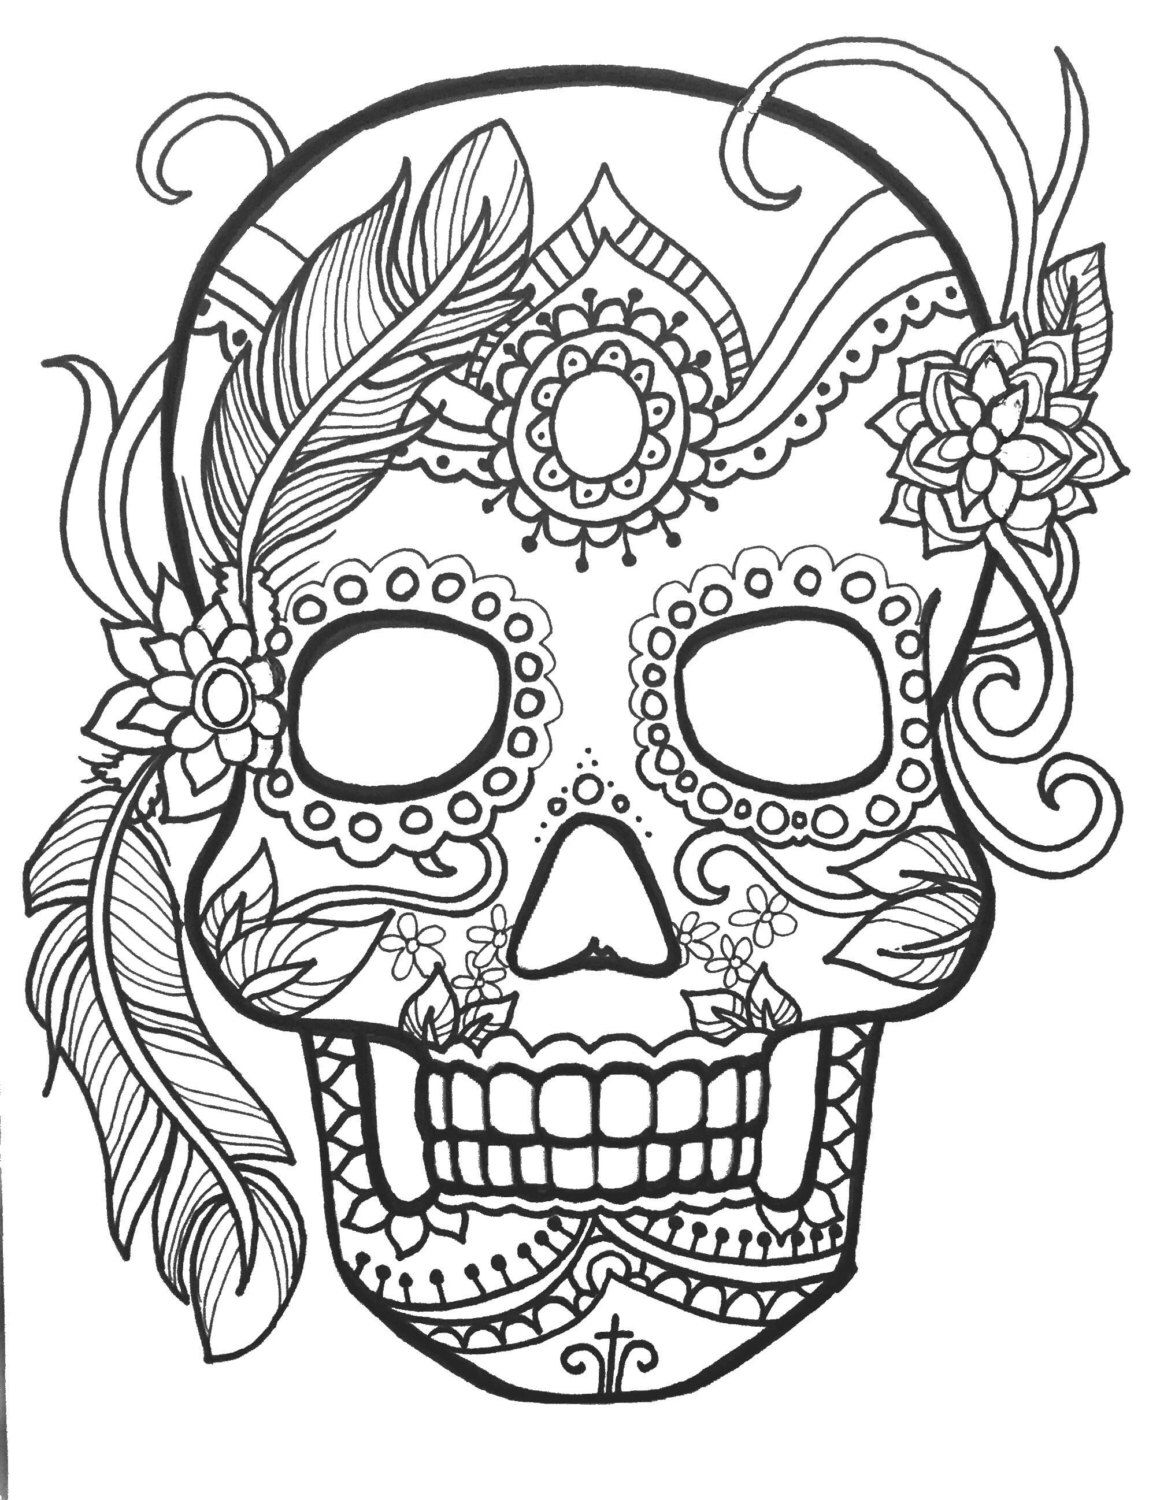 The coloring book of the dead - 10 Sugar Skull Day Of The Dead Coloringpages Original Art Coloring Book For Adults Coloring Therapy Coloring Pages For Adults Printable